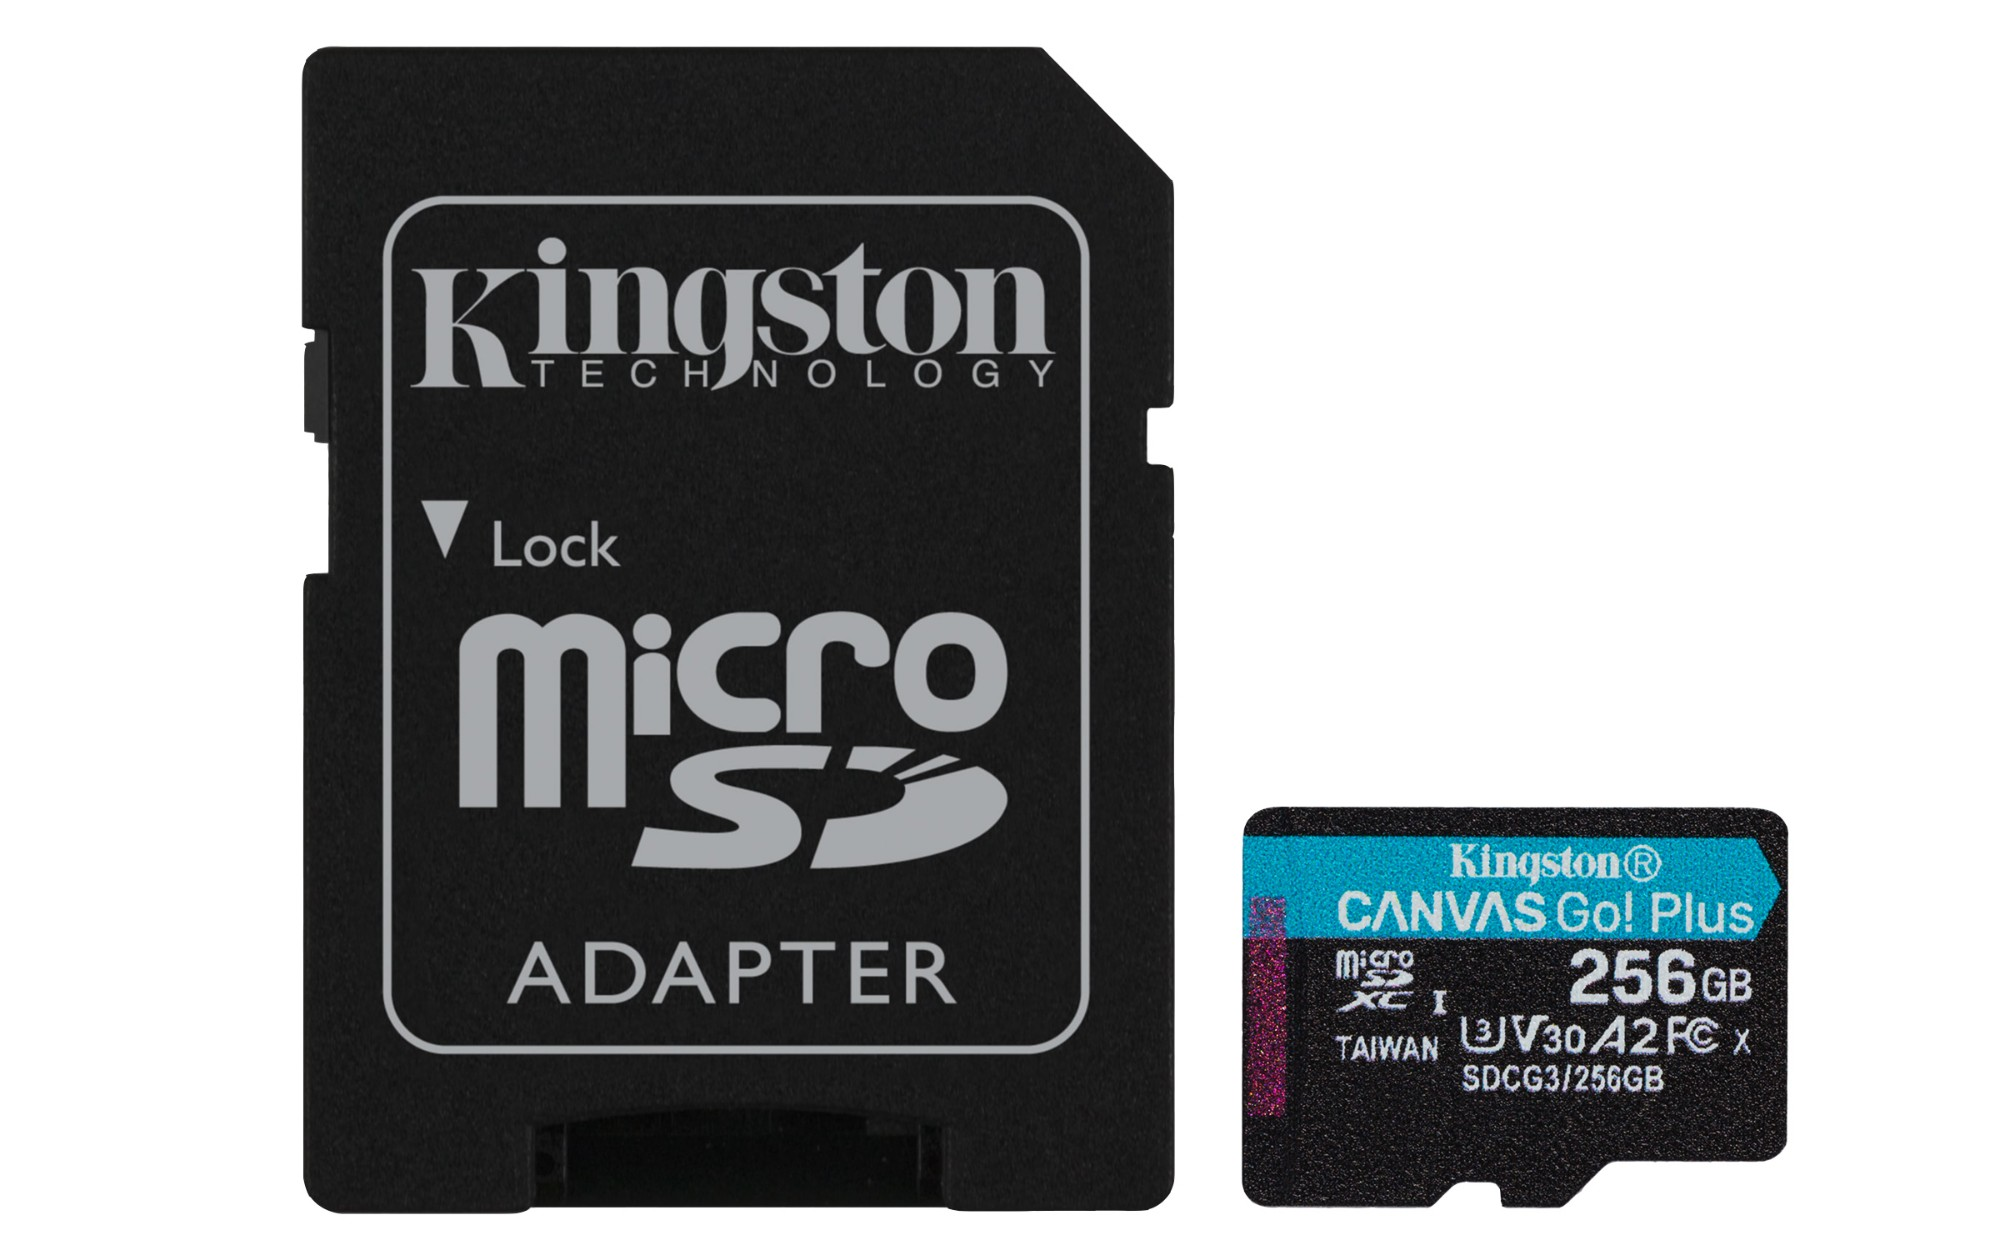 Kingston Technology Canvas Go! Plus memoria flash 256 GB SD Clase 10 UHS-I